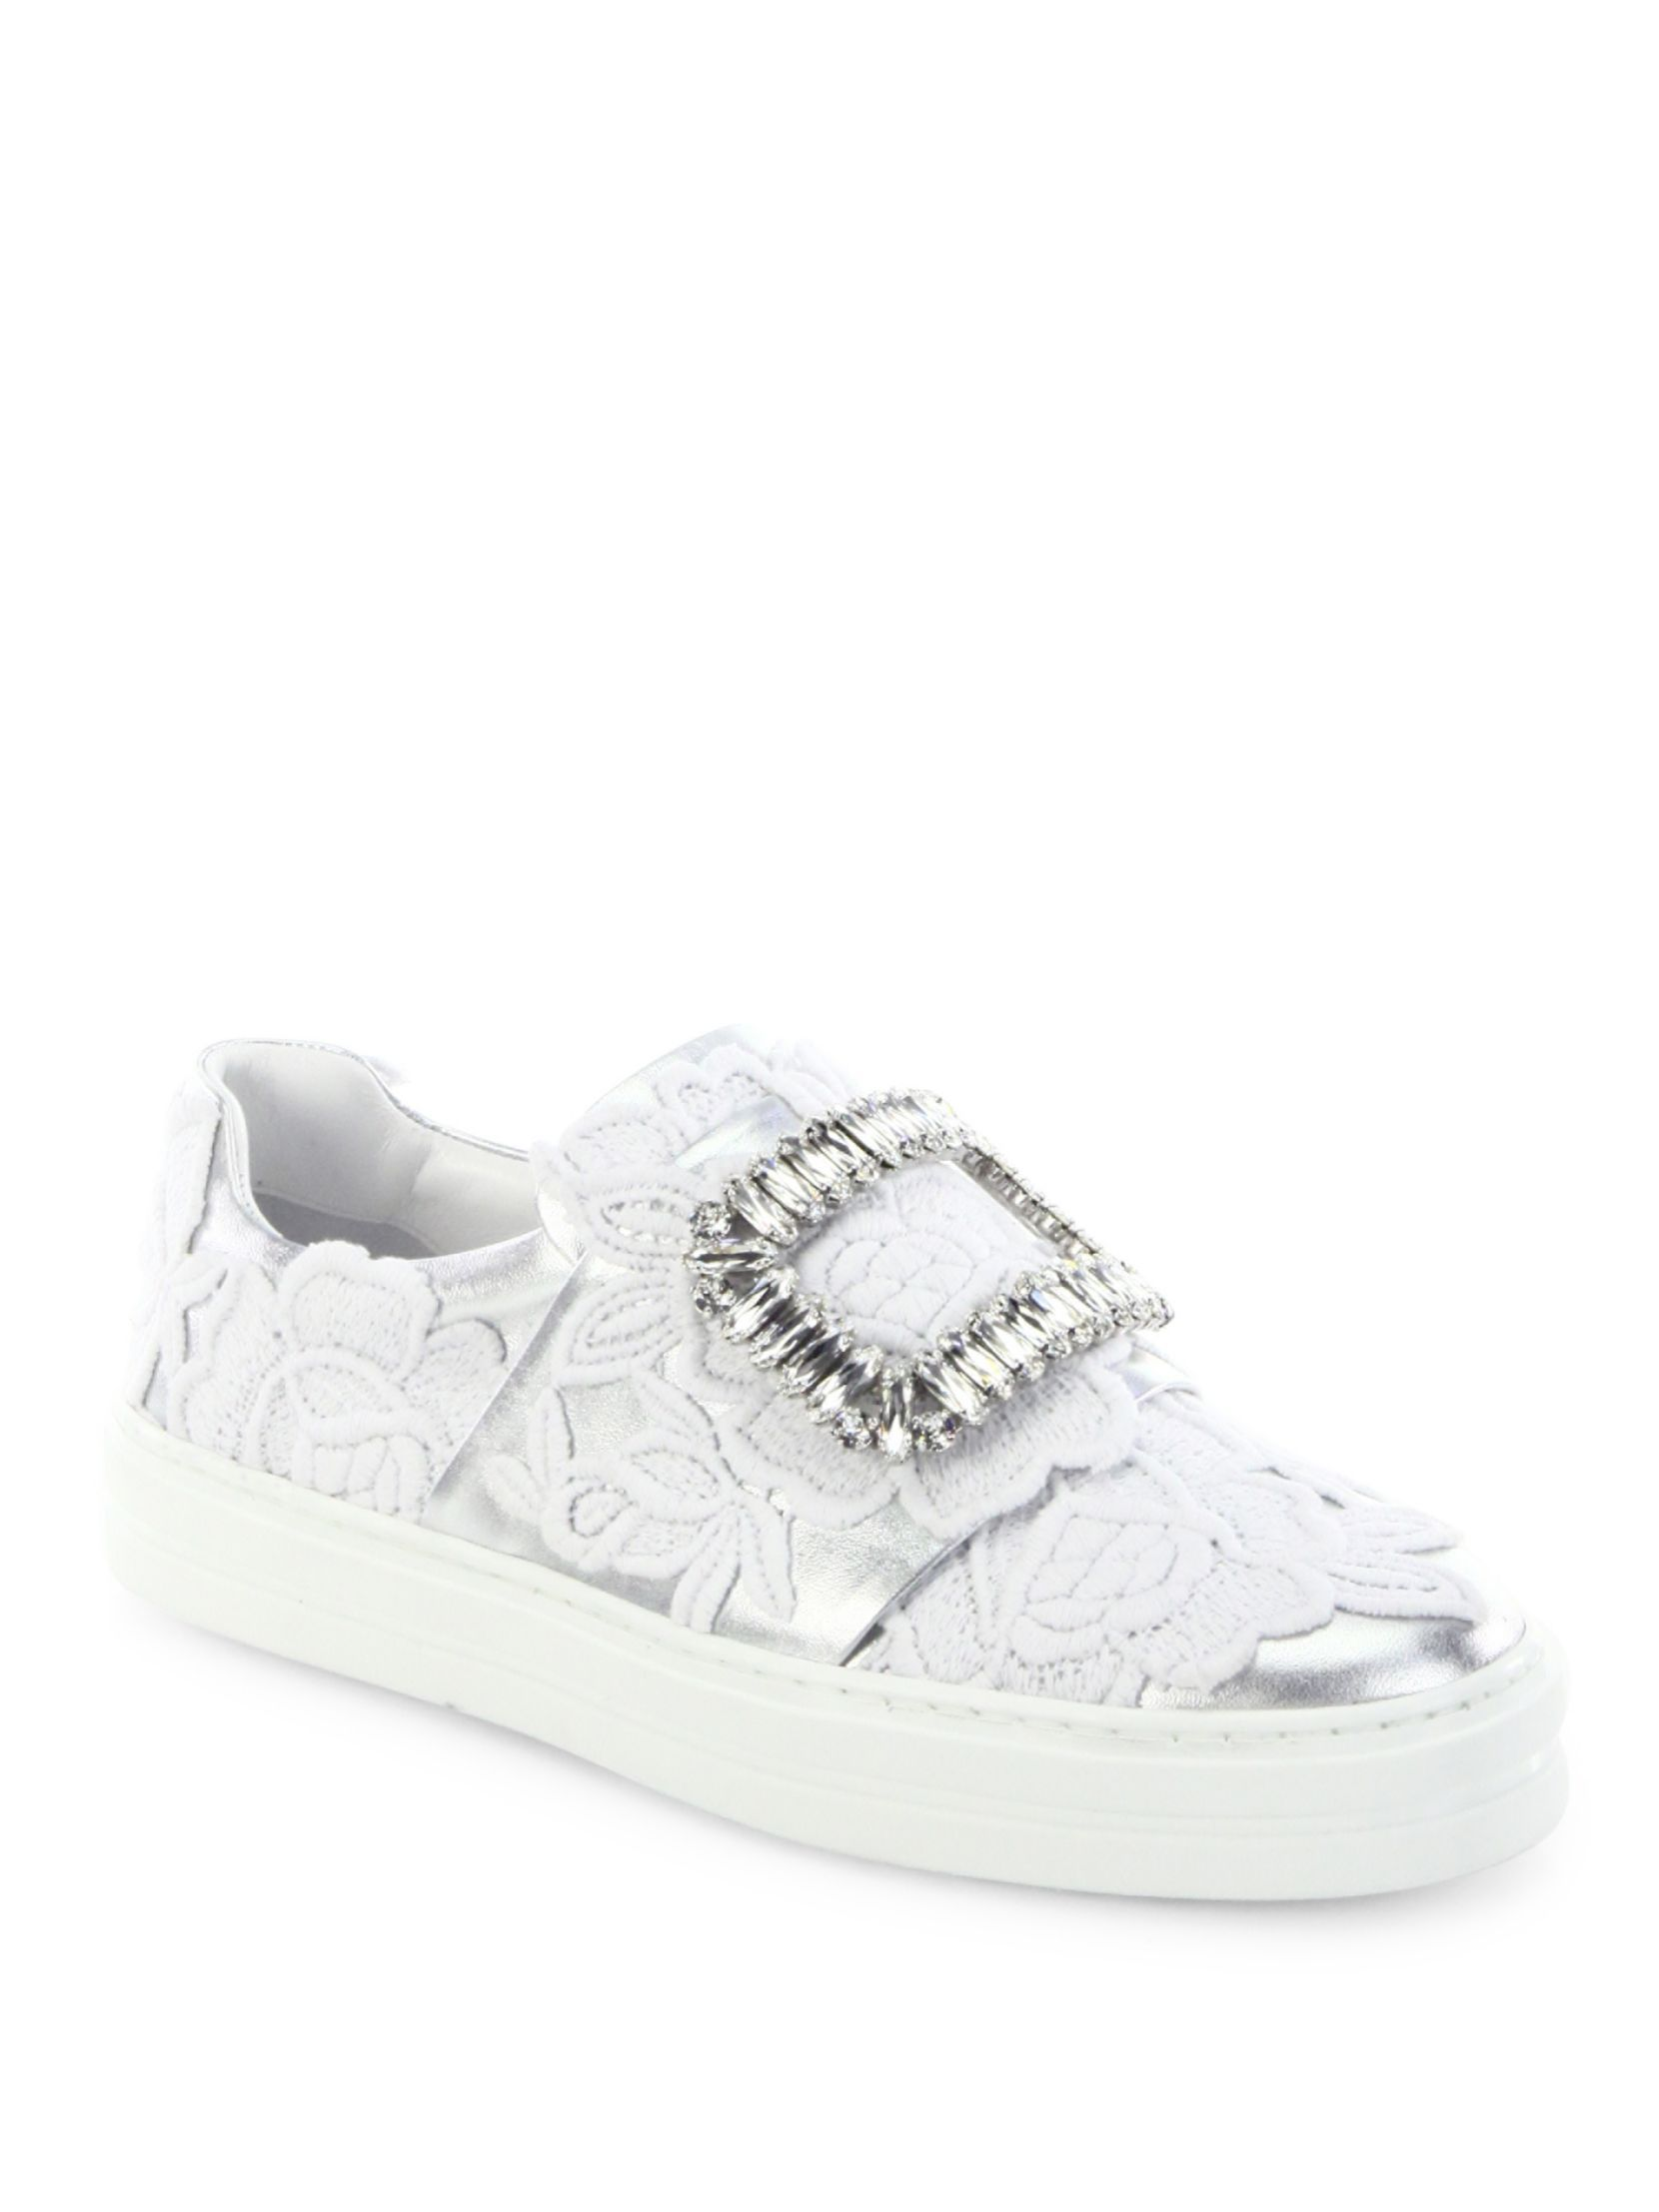 Roger Vivier Sneaky Viv Crystal Buckle Lace-Embroidered Metallic Leather  Sneakers